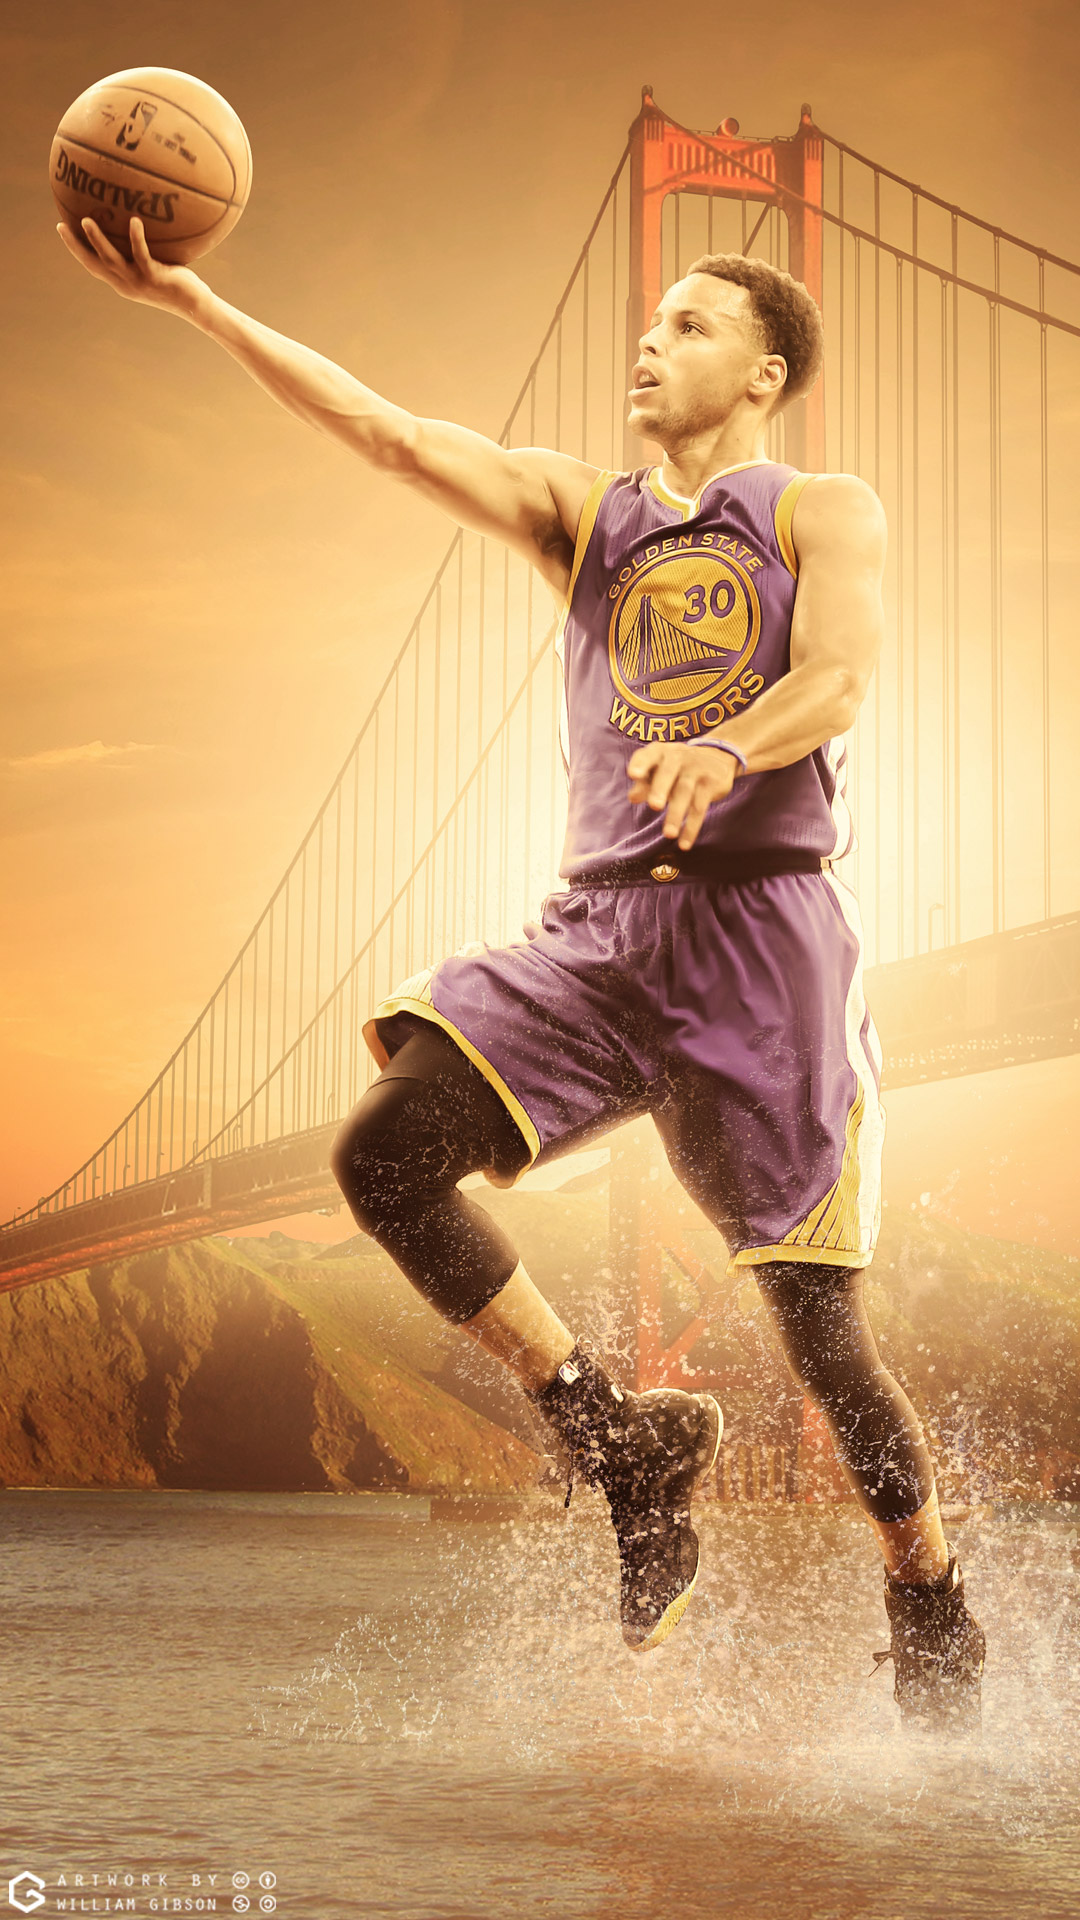 Iphone Basketball Wallpaper Curry